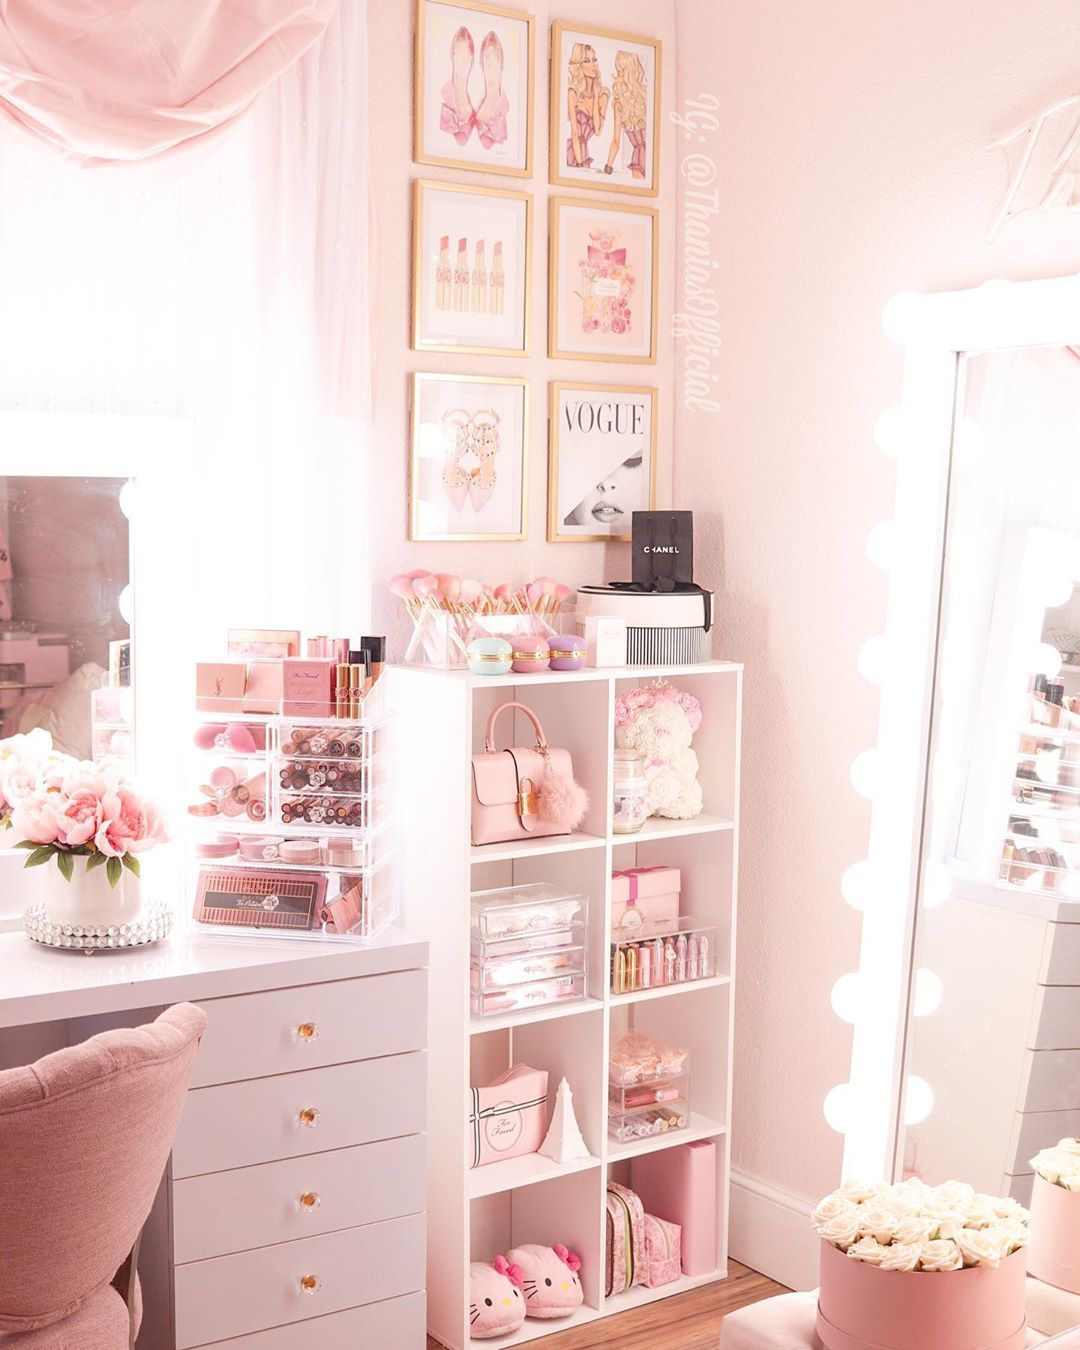 Thania Beauty Fashion On Instagram Staying Has Gotten Me Doing Projects I Didn T Even Plan On In 2020 Girl Bedroom Decor Bedroom Decor Beauty Room Decor